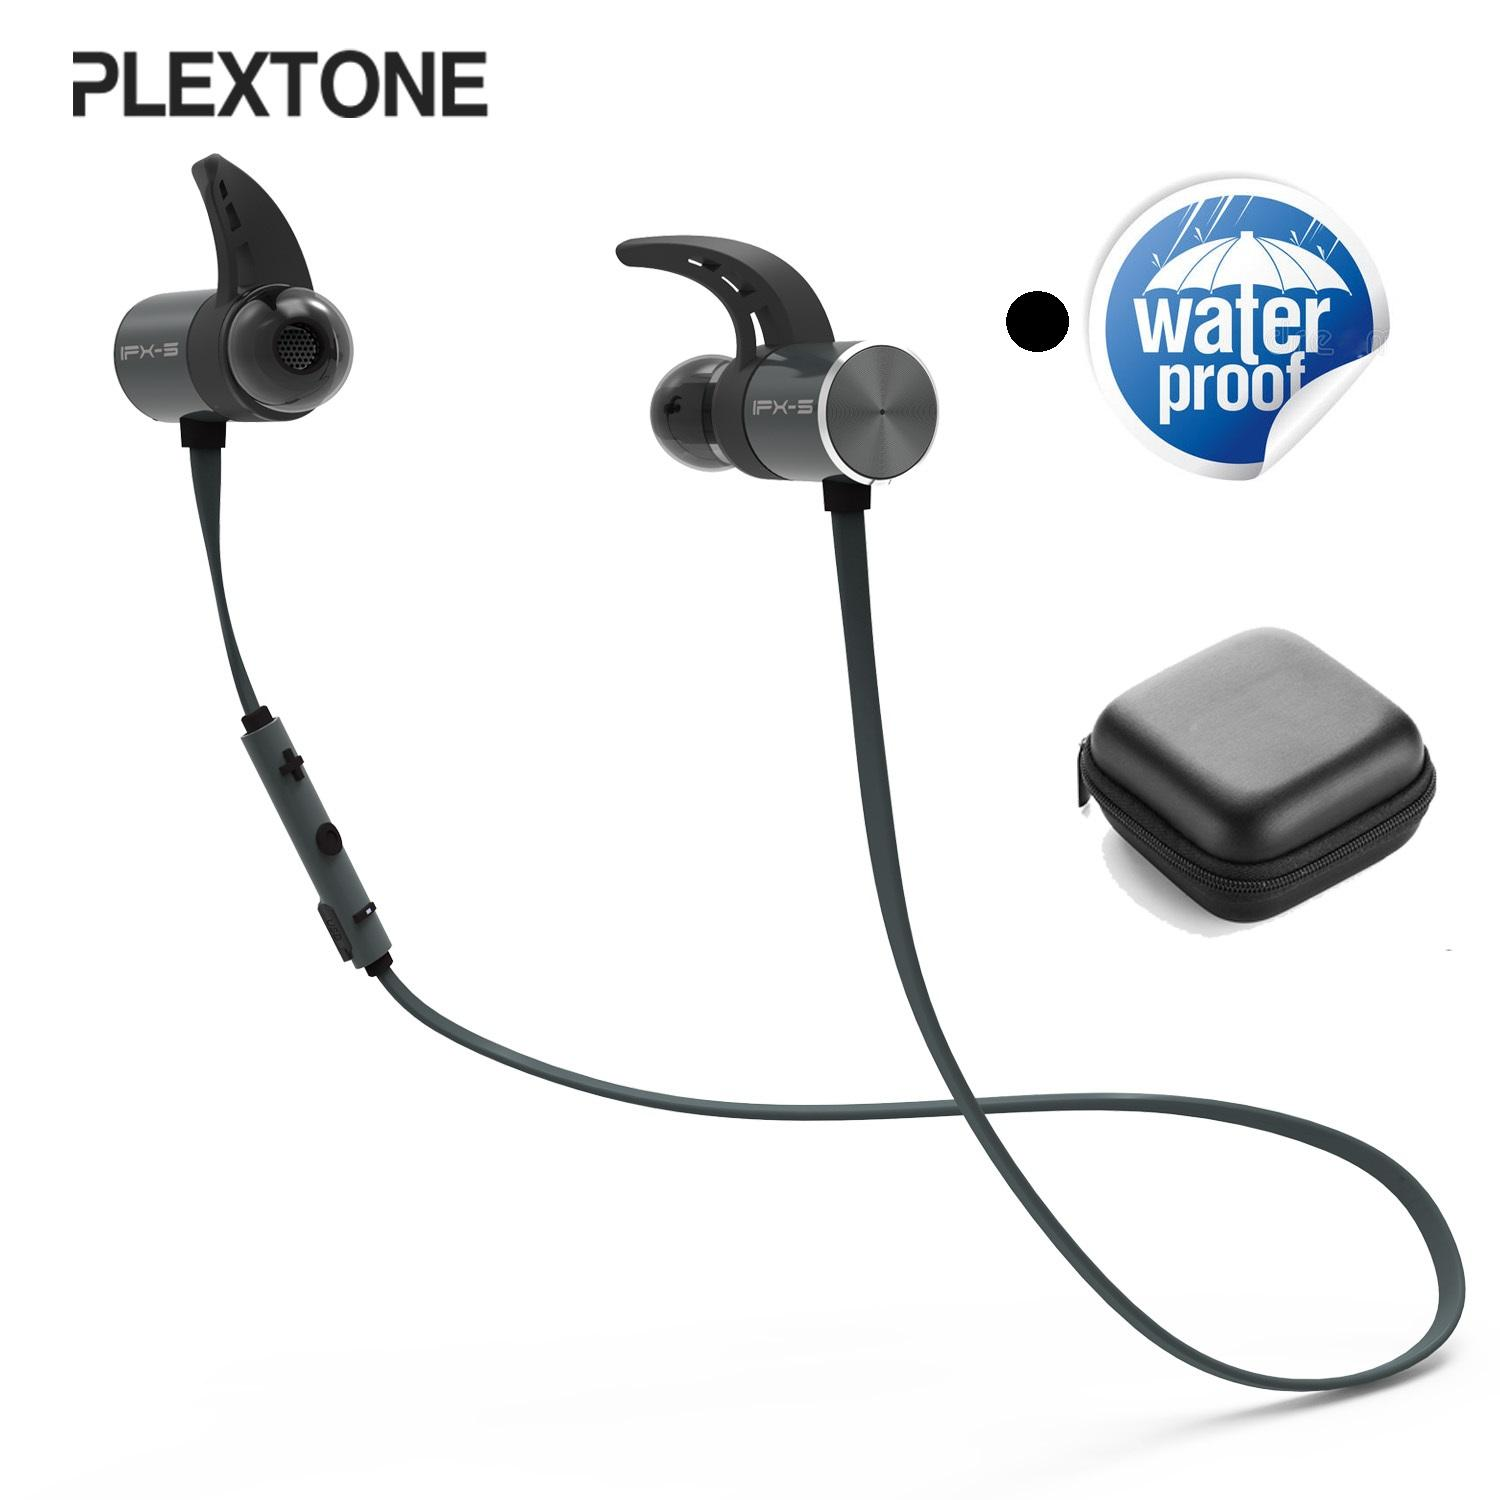 @plextone Bx343 Wireless Headphone Bluetooth Ipx5 Waterproof Earbuds Workout Magnetic Headset Earphones With Microphone For Phone Sport Dual Battery By Earphones From Shangguanlu.